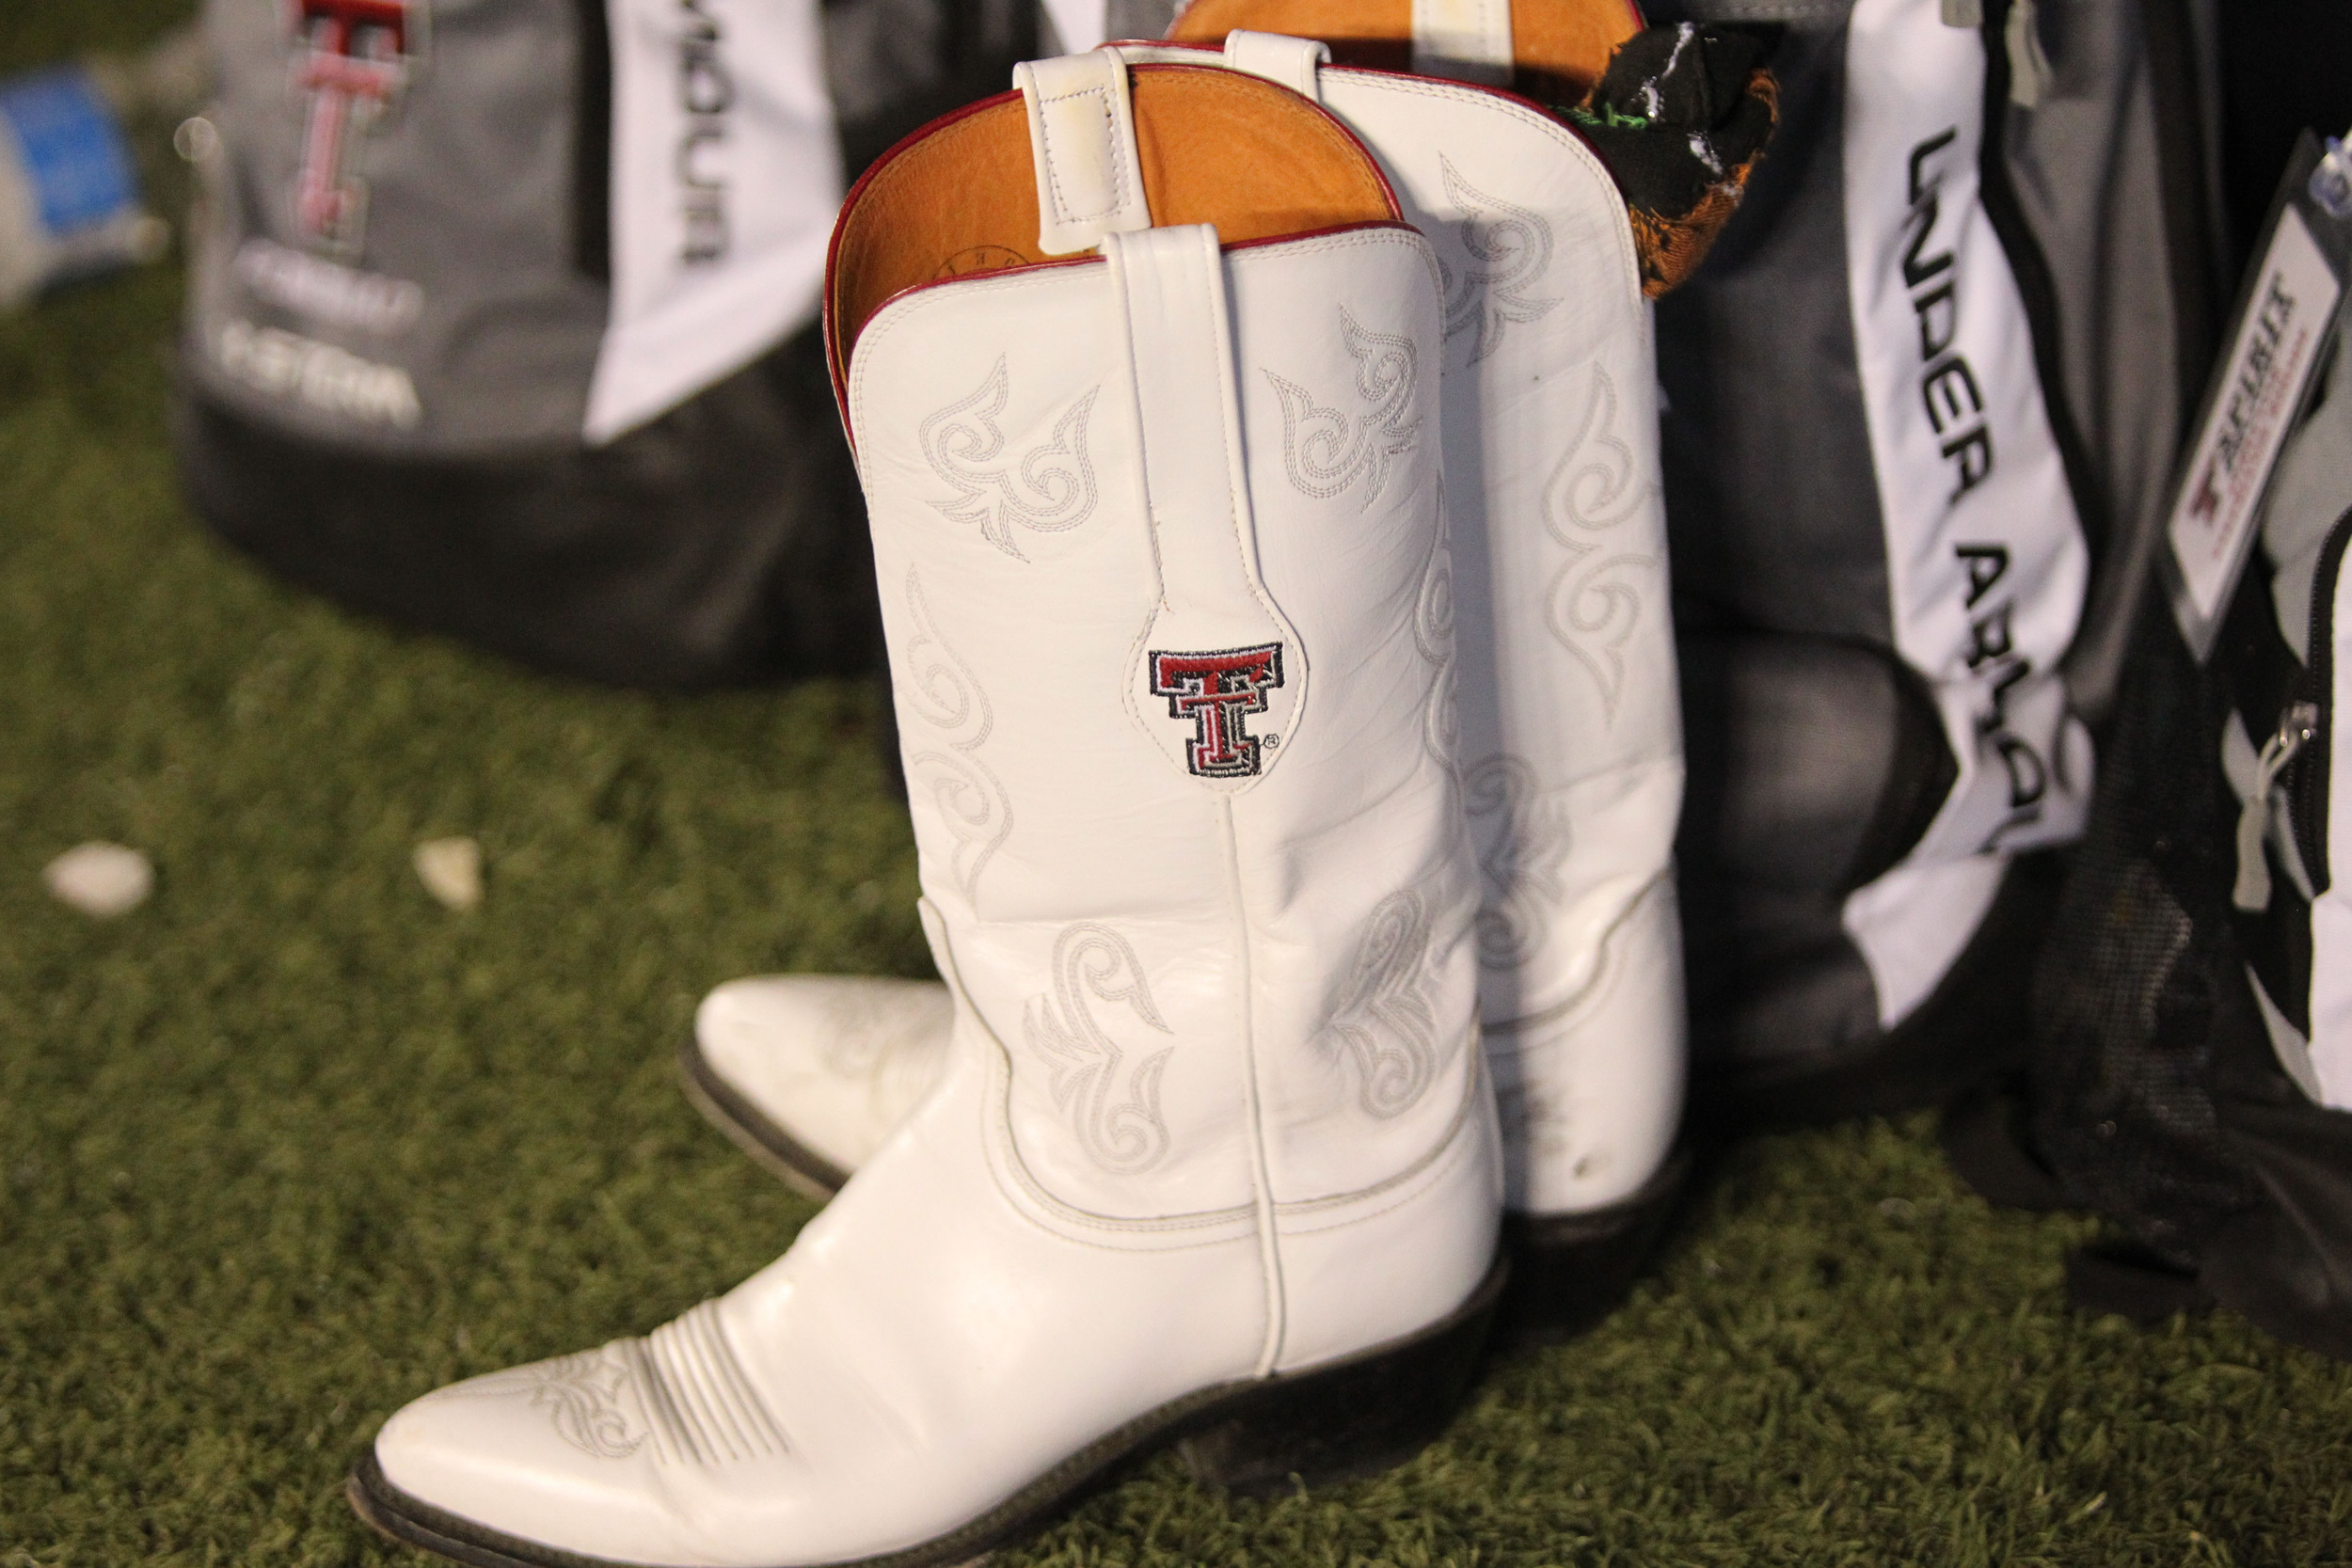 For when you want your pride in the fourth-best team in the state of Texas. Yes, even worse than Texas.